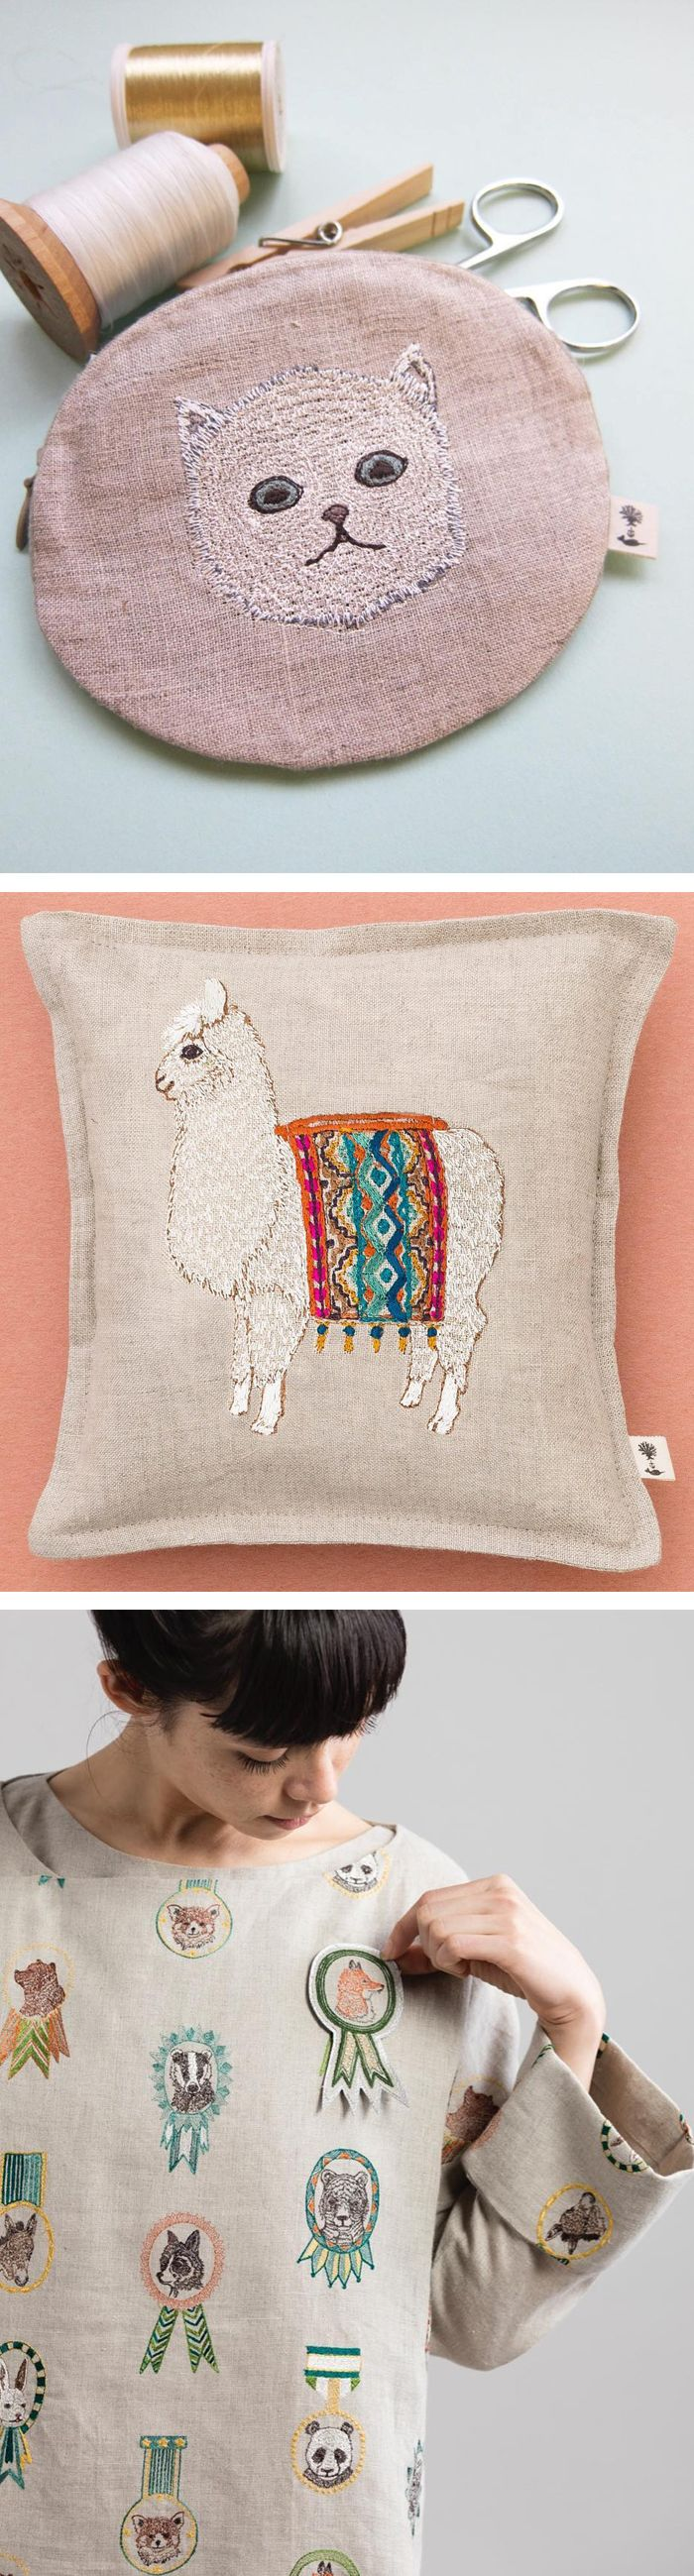 Embroidery by Coral & Tusk // embroidered goods // merit badges // llama art